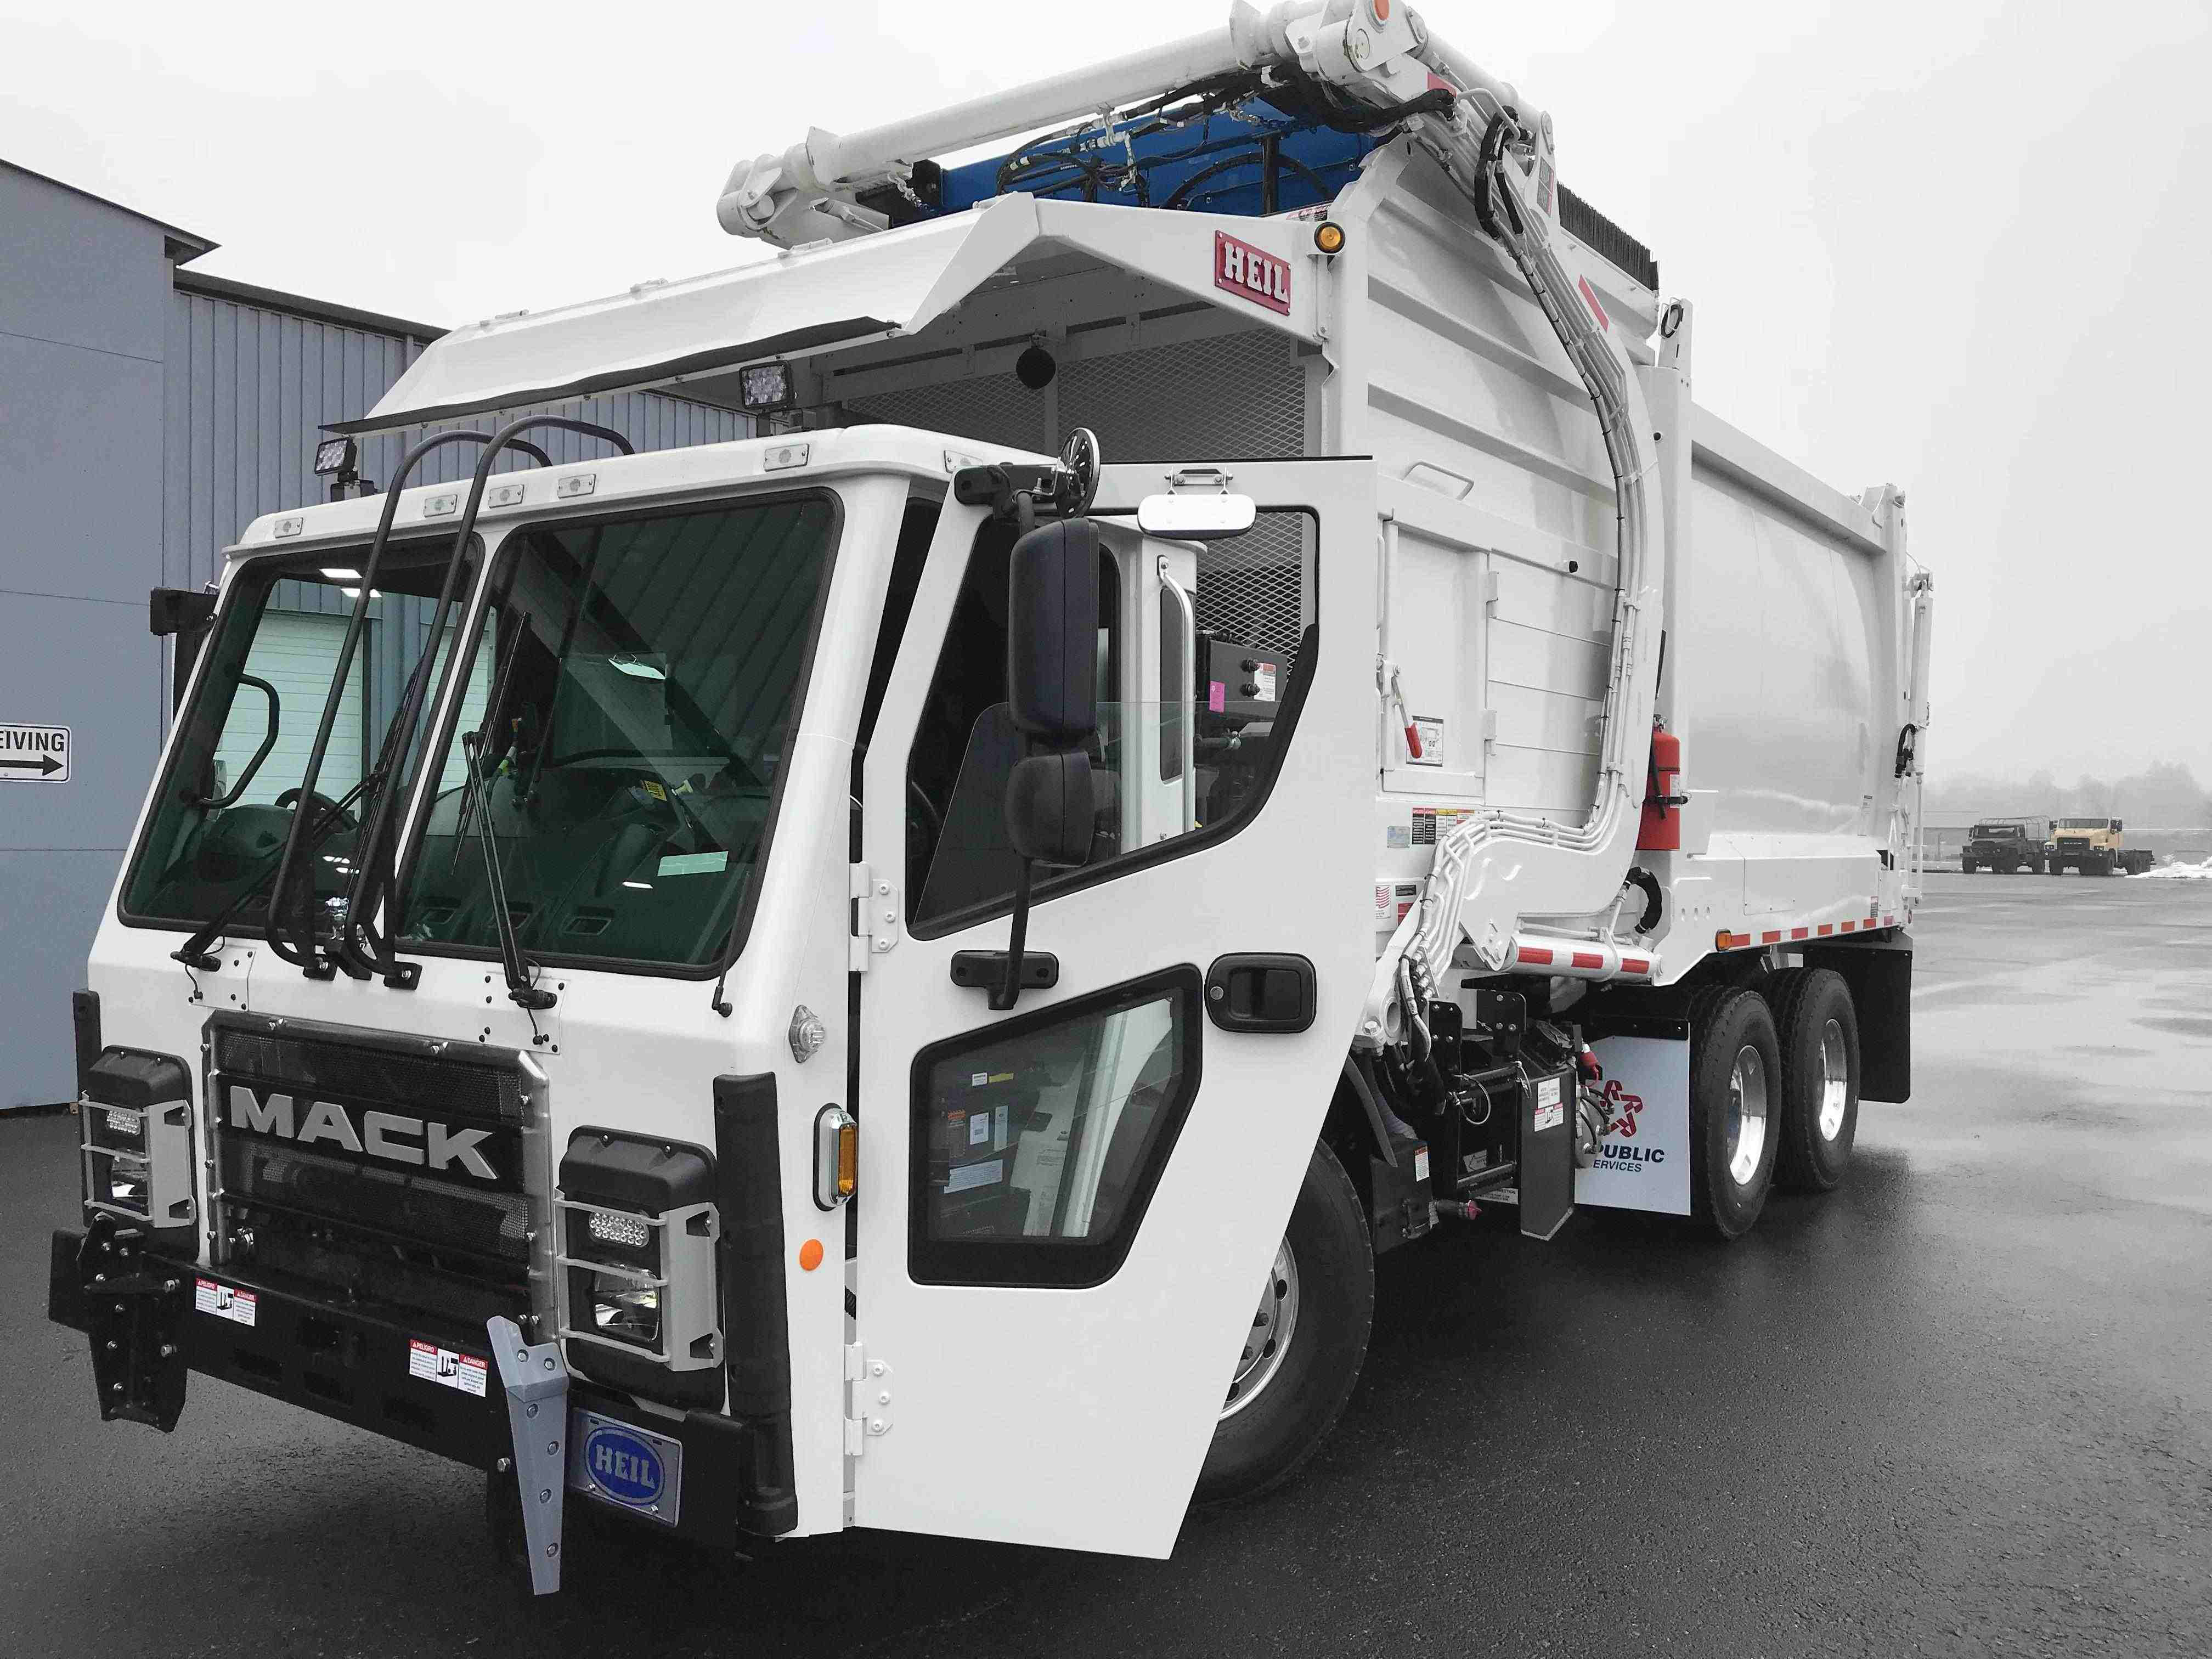 Highlighting the features of the Mack LR model truck